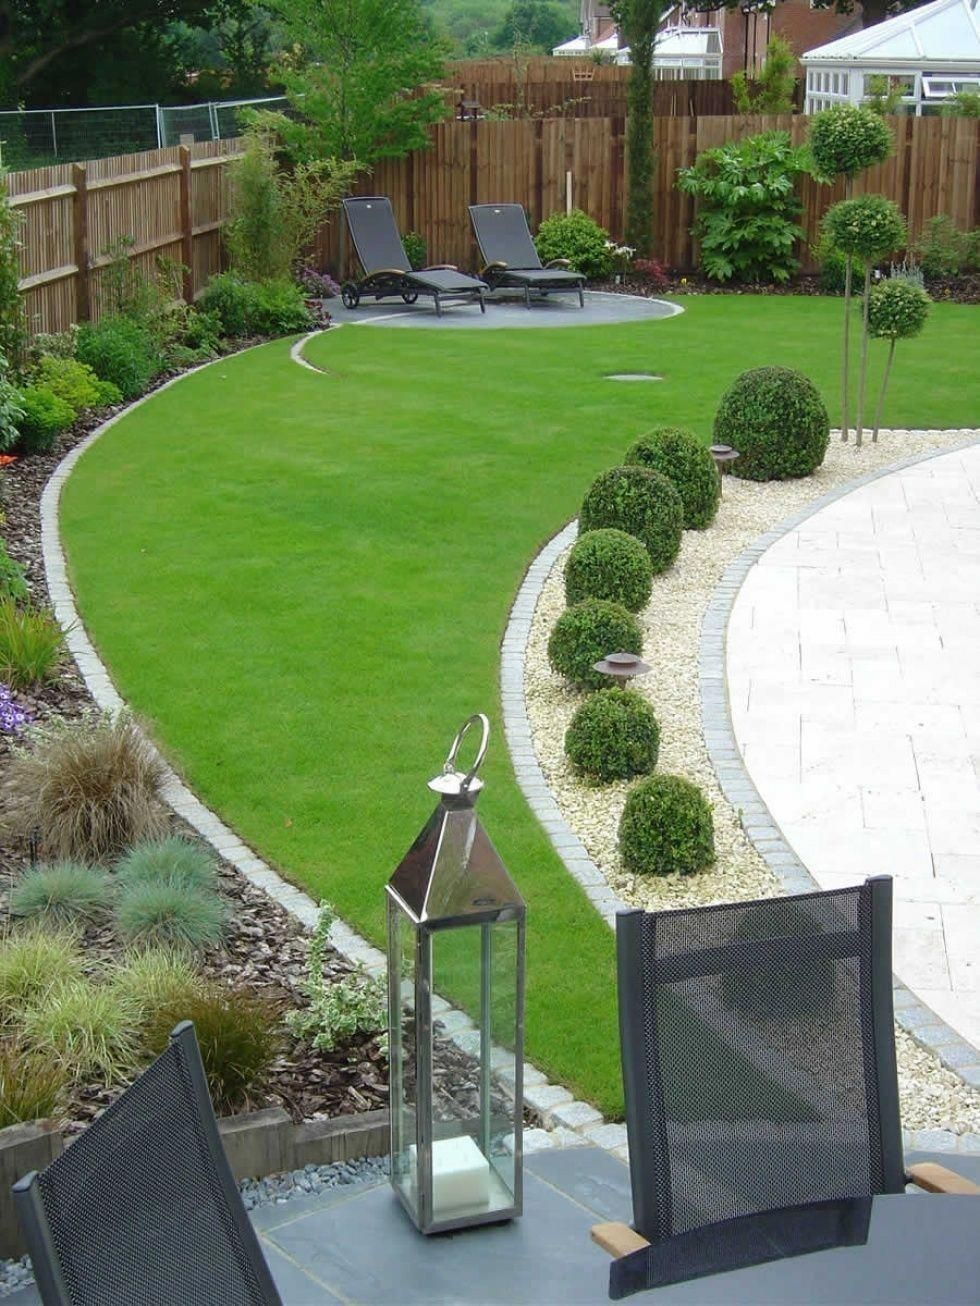 Backyard Landscaping Design Ideas And Tips For Your Perfect Backyard Homelovers Backyard Garden Landscape Modern Landscaping Garden Design Ideas for backyard garden design